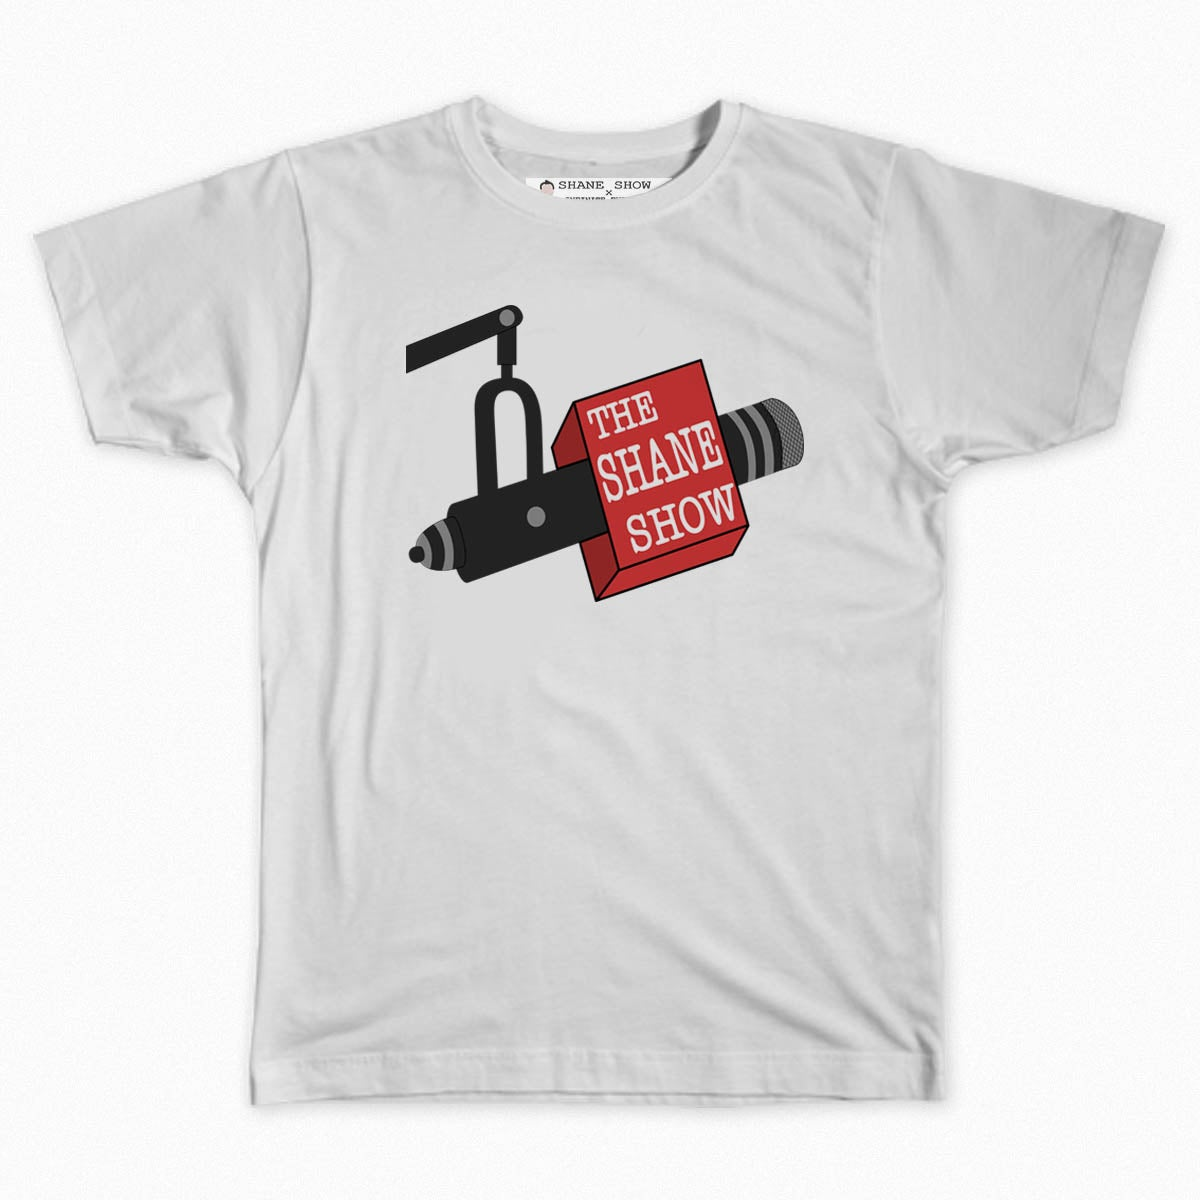 Image of Shane Show Microphone Tee (Black or White)